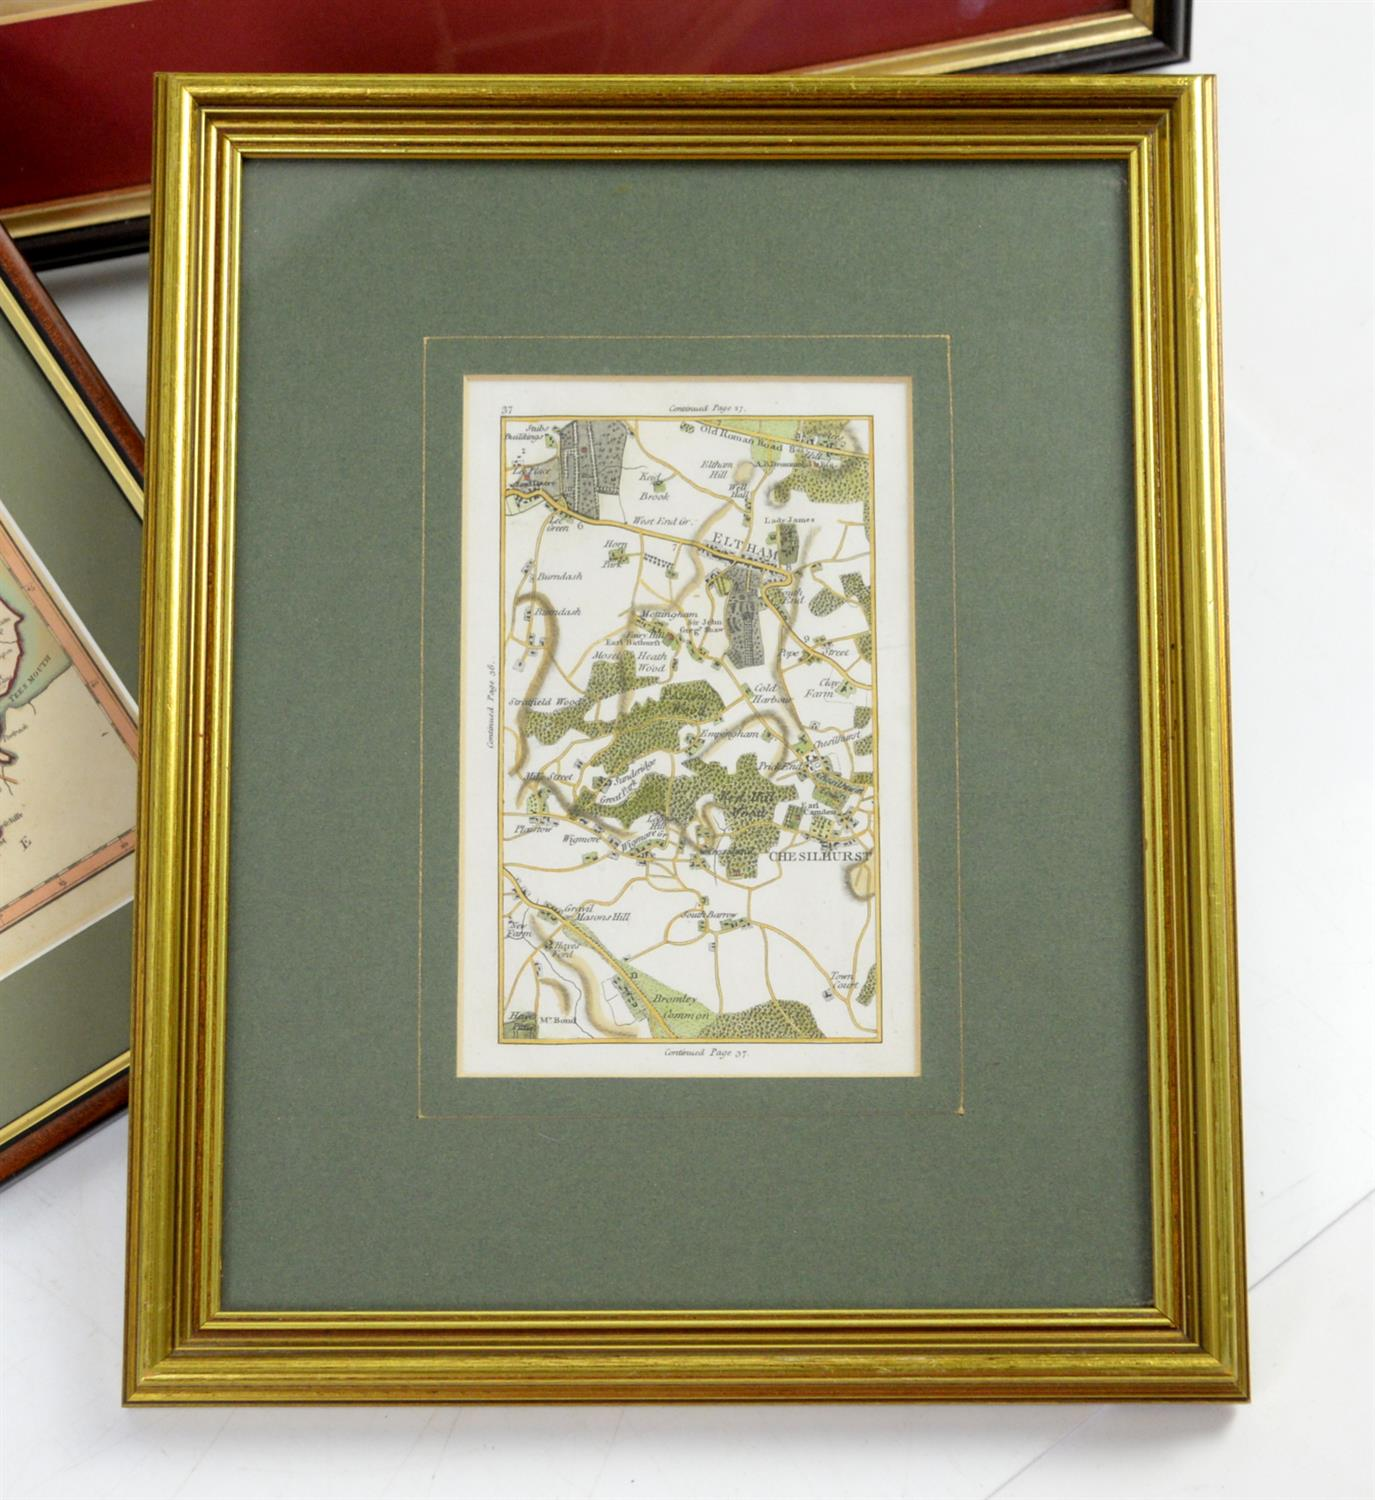 Colletion of maps to include North Riding of Yorkshire by John Cary, 1787, 22 x 27cm; Rutlandshire - Image 3 of 3